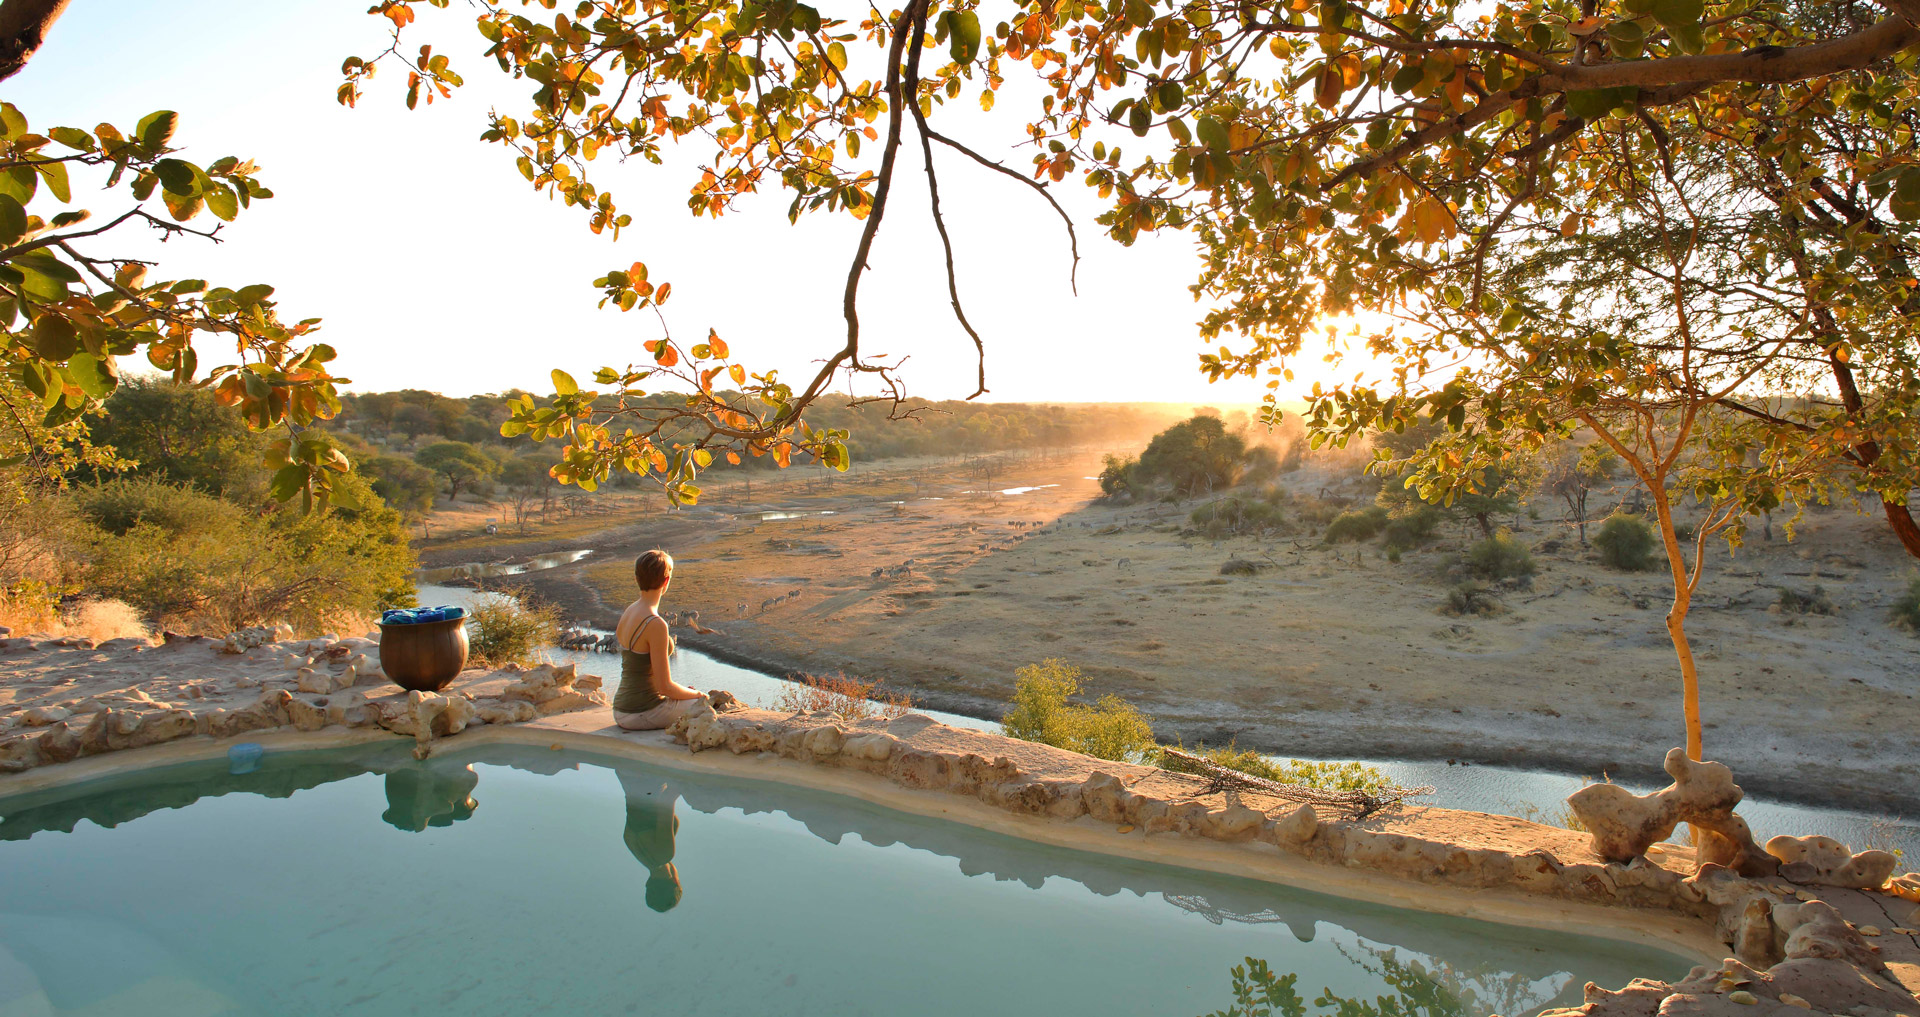 Person watching sunset from pool in Meno a Kwena, Botswana